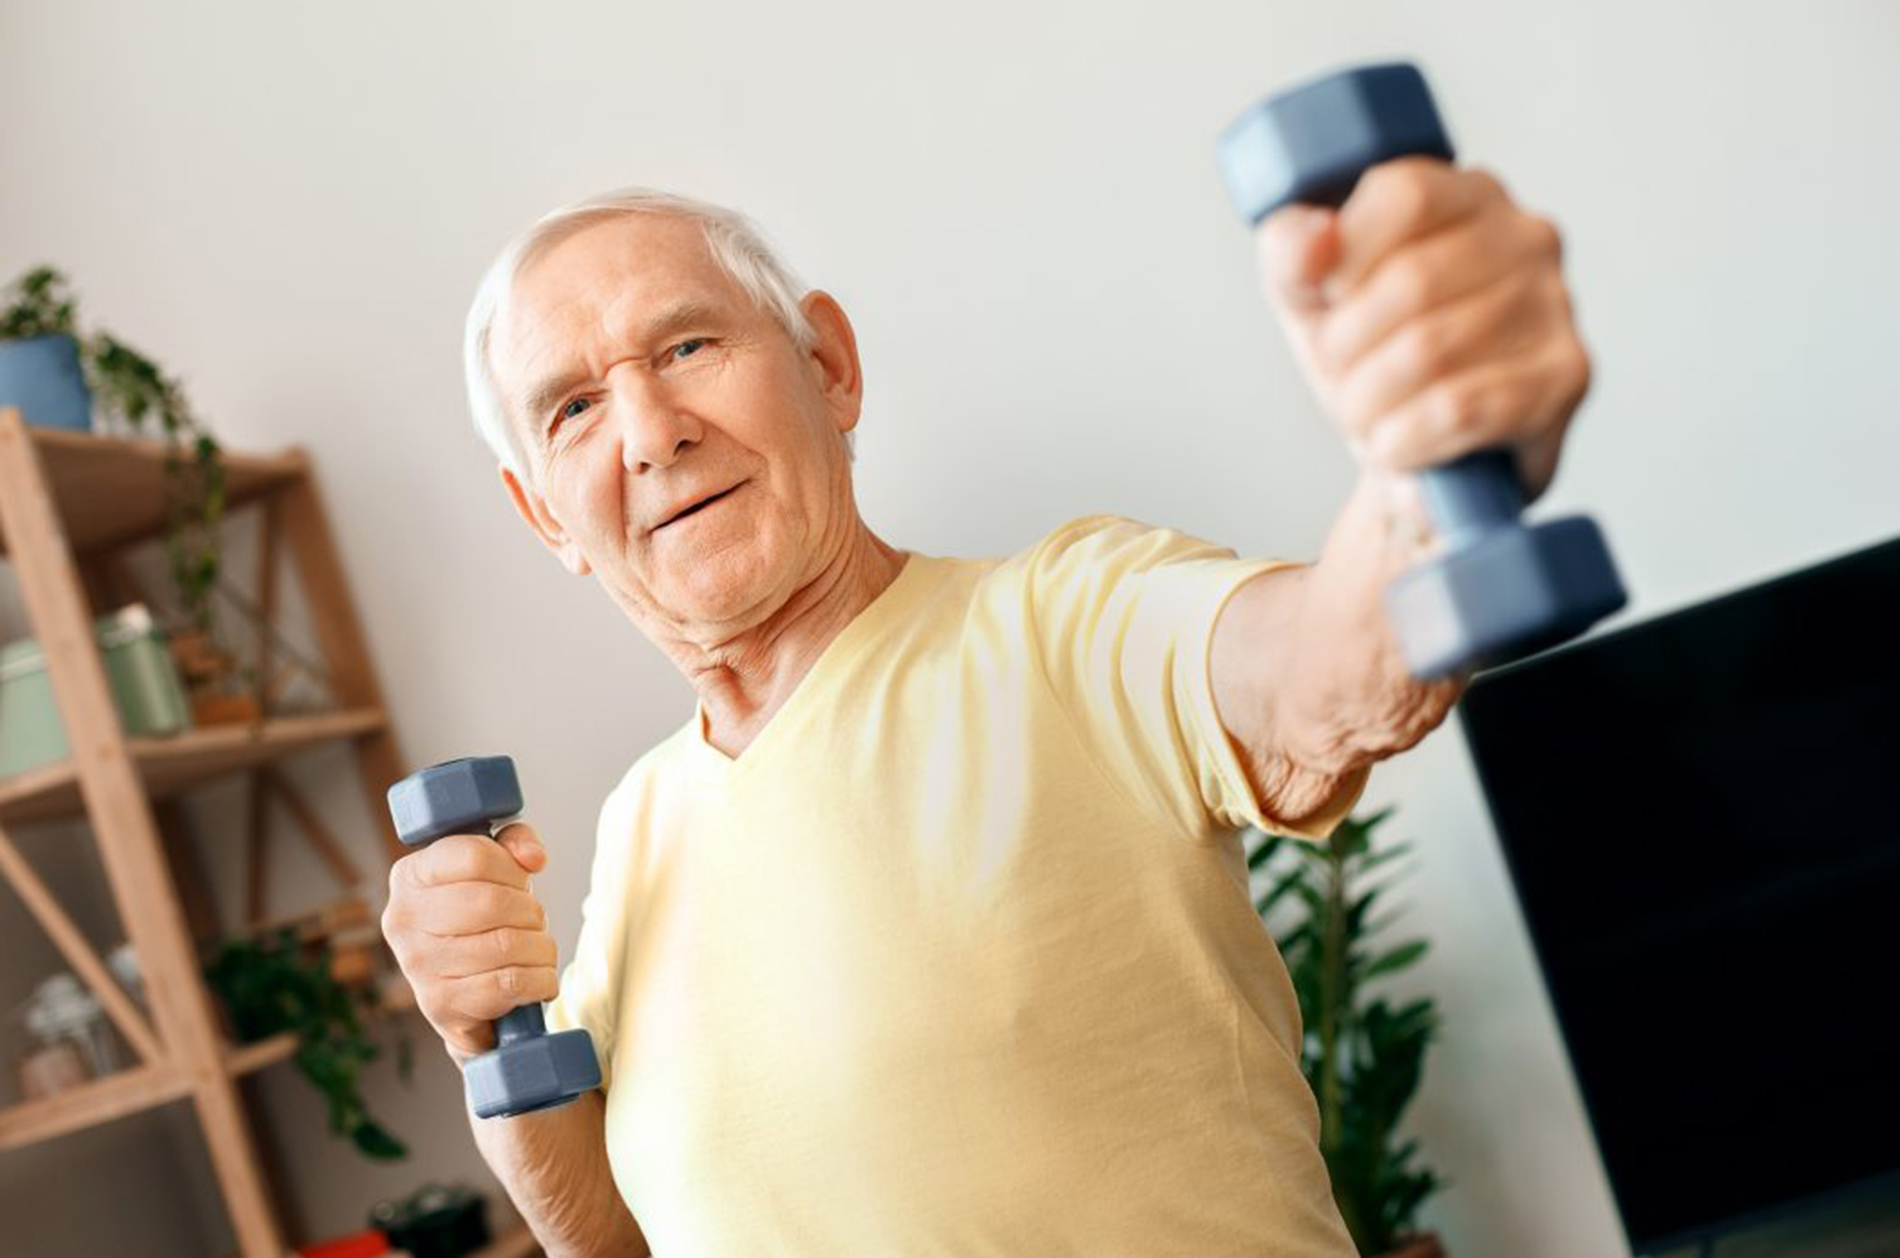 Elderly man lifting weights at home